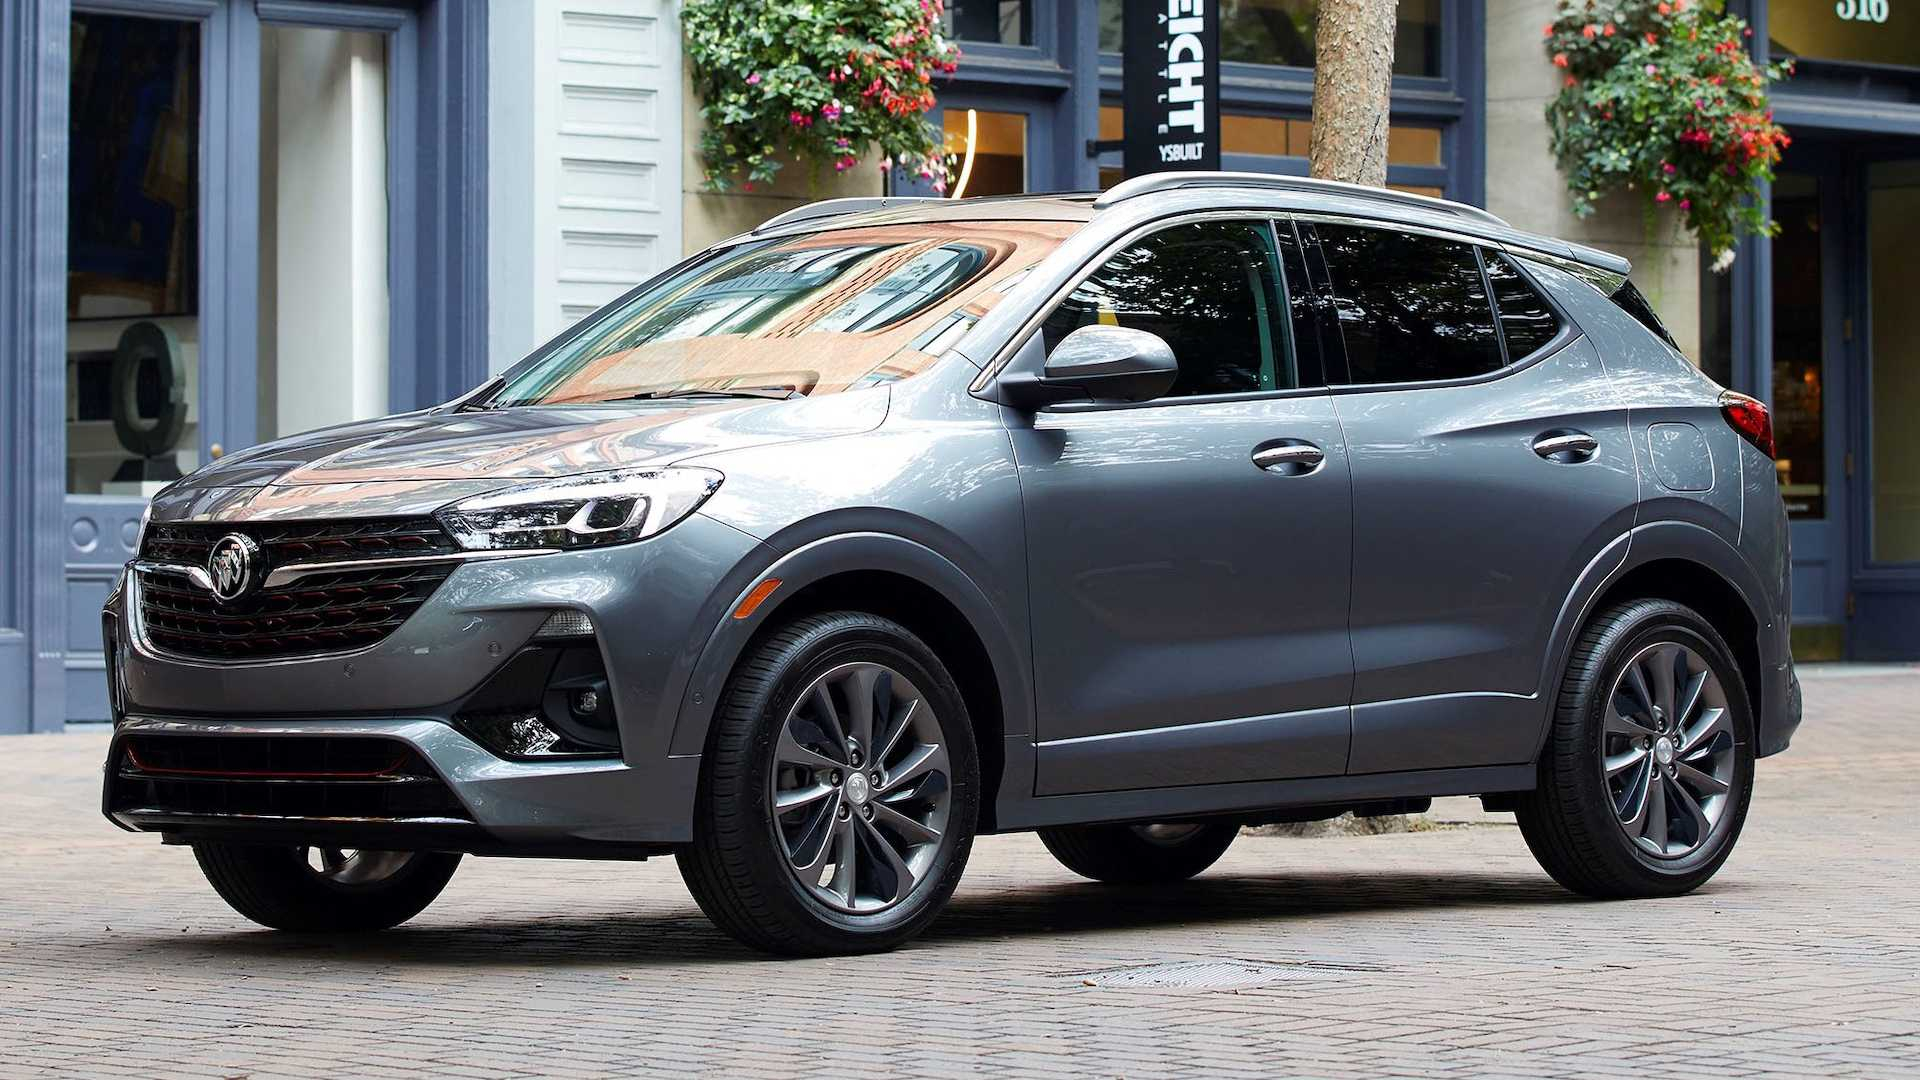 2021 Buick Encore Gx Details Emerge: Styling Tweaks, More Tech What Colors Does The 2022 Buick Encore Gx Come In